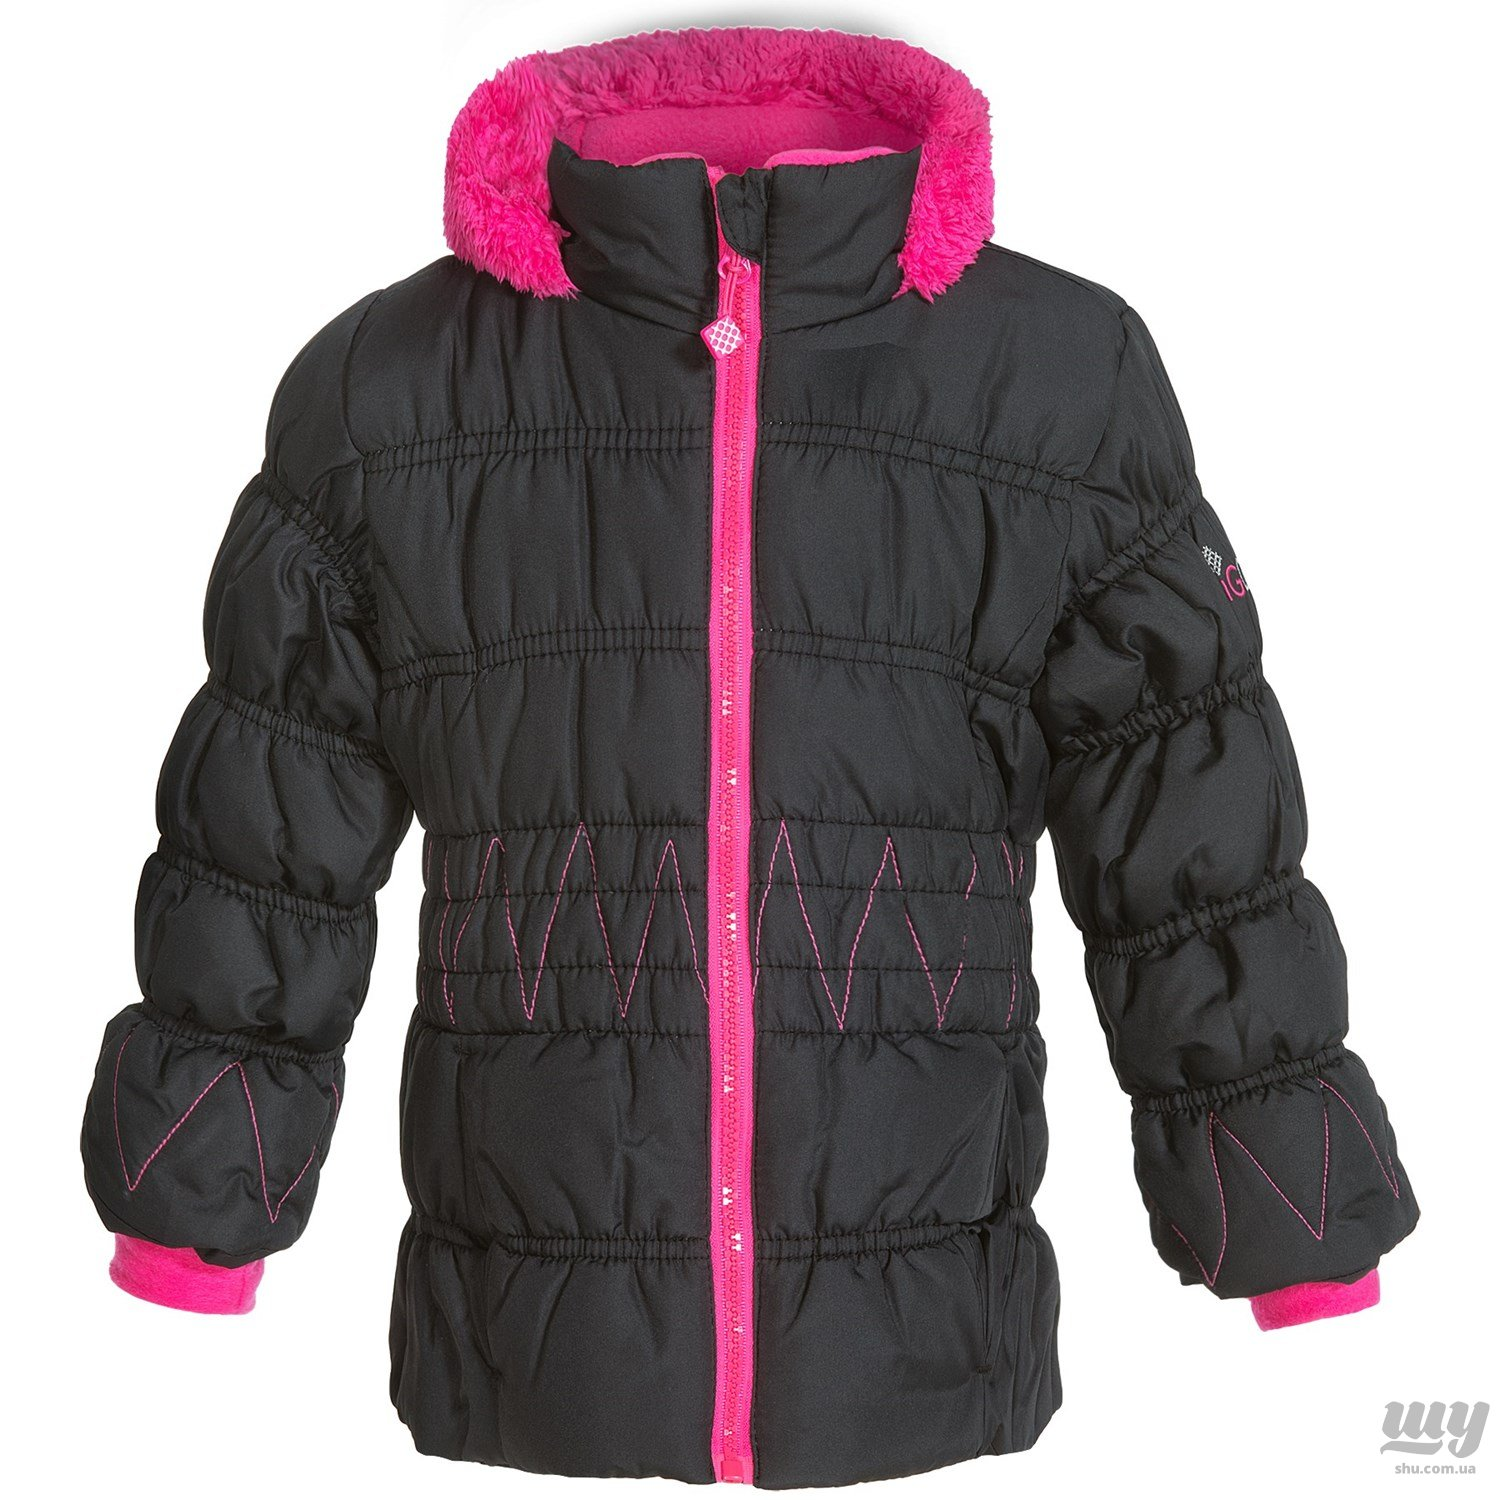 big-chill-contrast-stitch-puffer-jacket-insulated-for-little-girls-in-black-p-9553p_03-1500.3.jpg